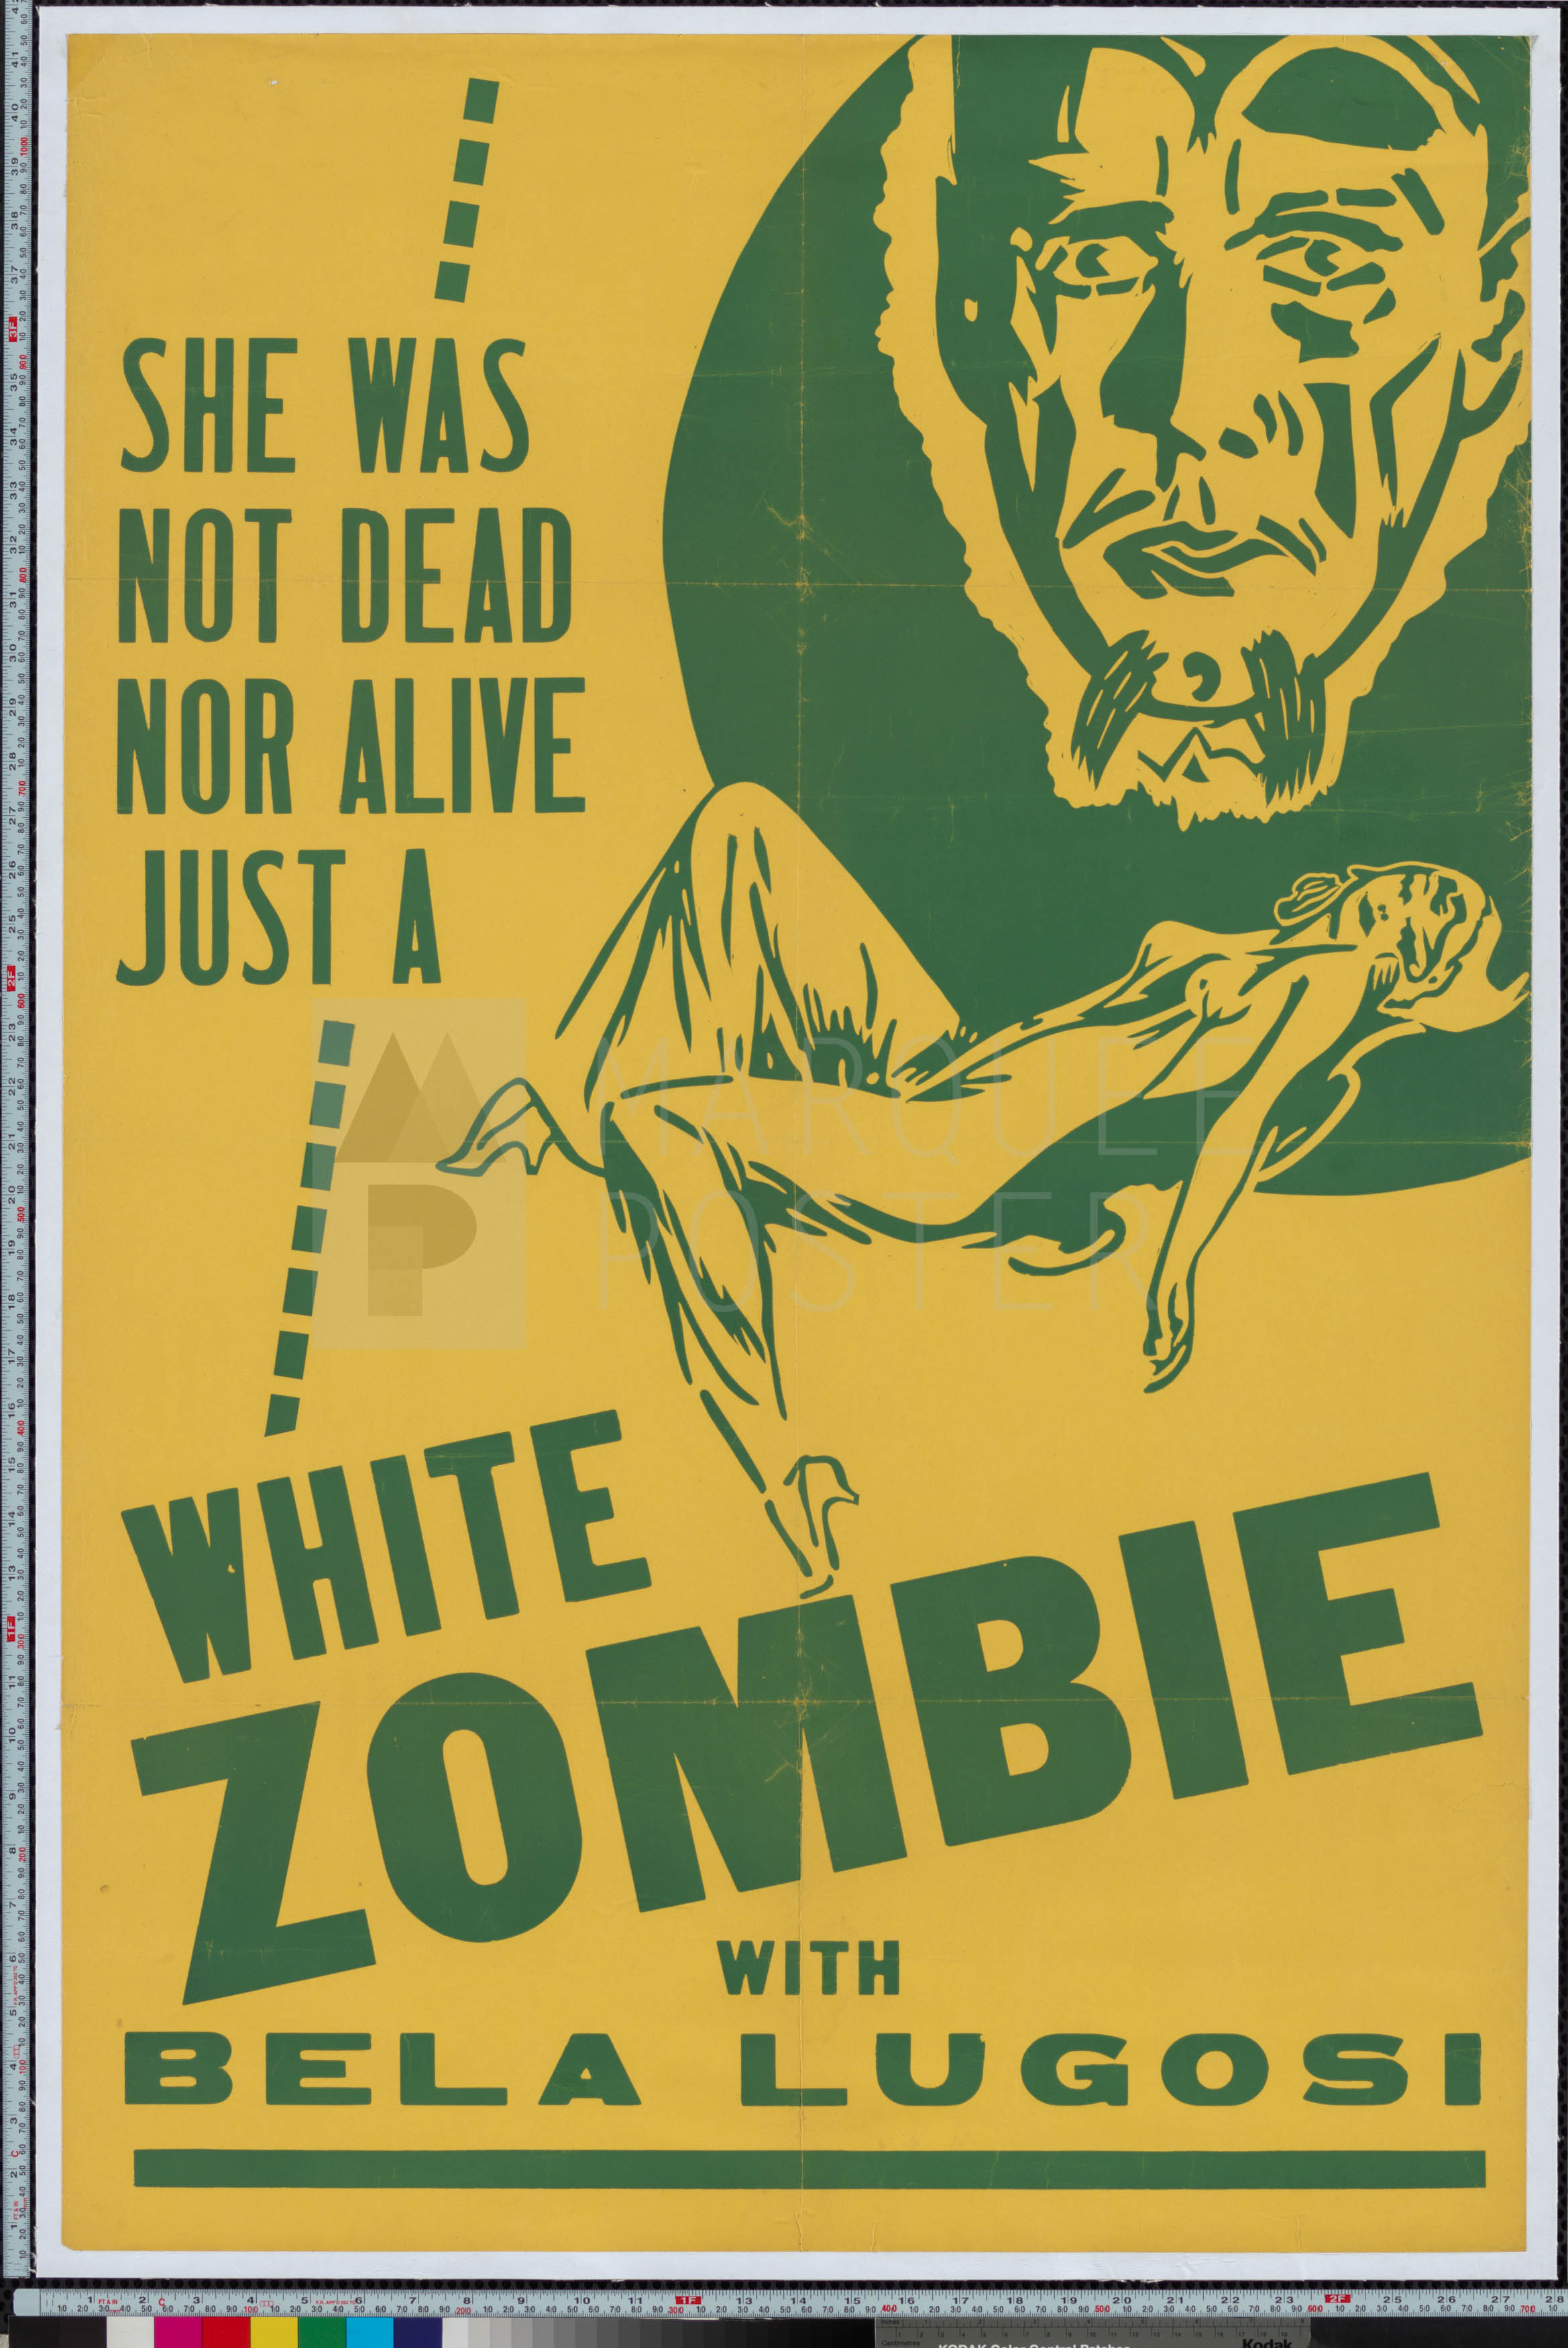 4-white-zombie-'race-theater'-re-release-us-1-sheet-1940s-02